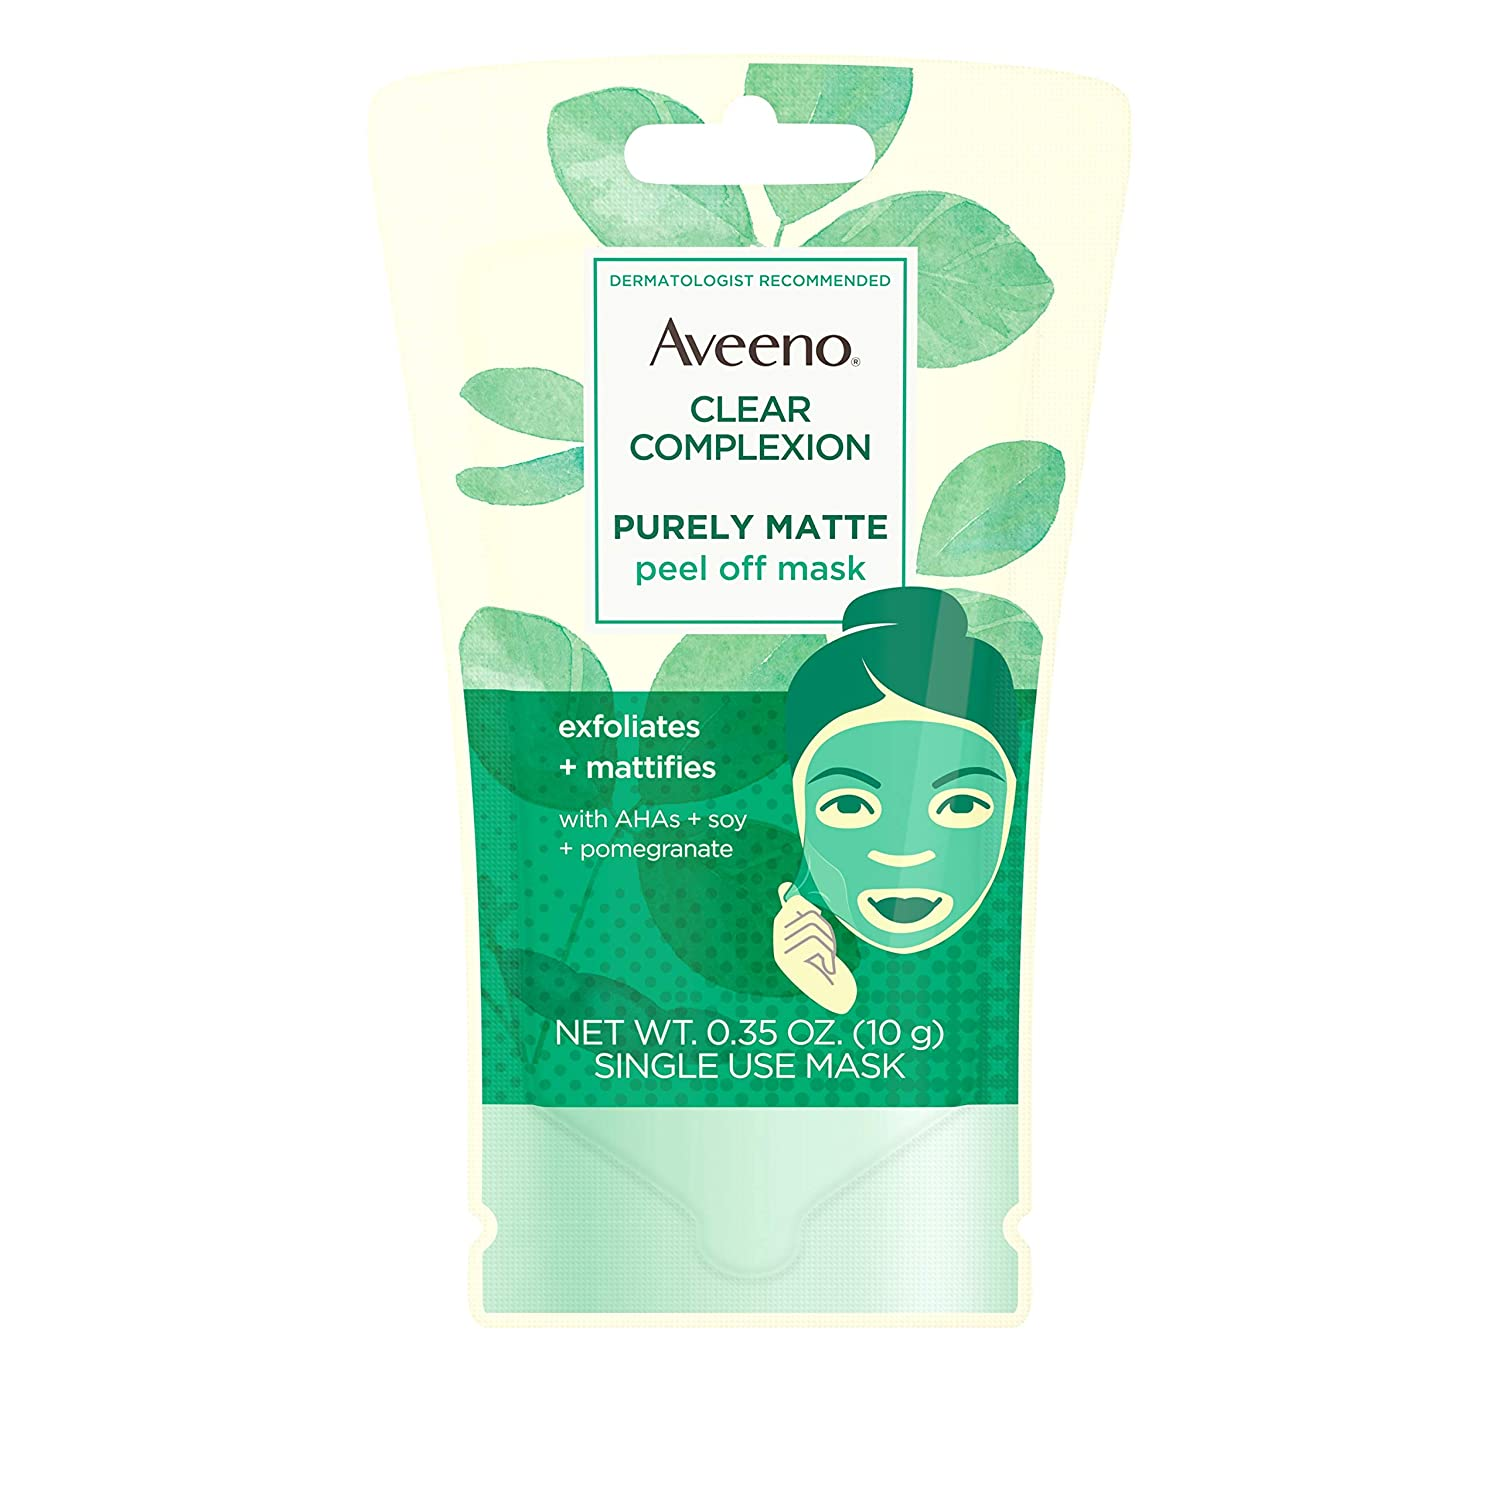 Aveeno Clear Complexion Pure Matte Peel Off Face Mask with Alpha Hydroxy Acids, Soy & Pomegranate for Clearer-Looking Skin, Non-Comedogenic, Paraben- & Phthalate-Free, 0.35 oz